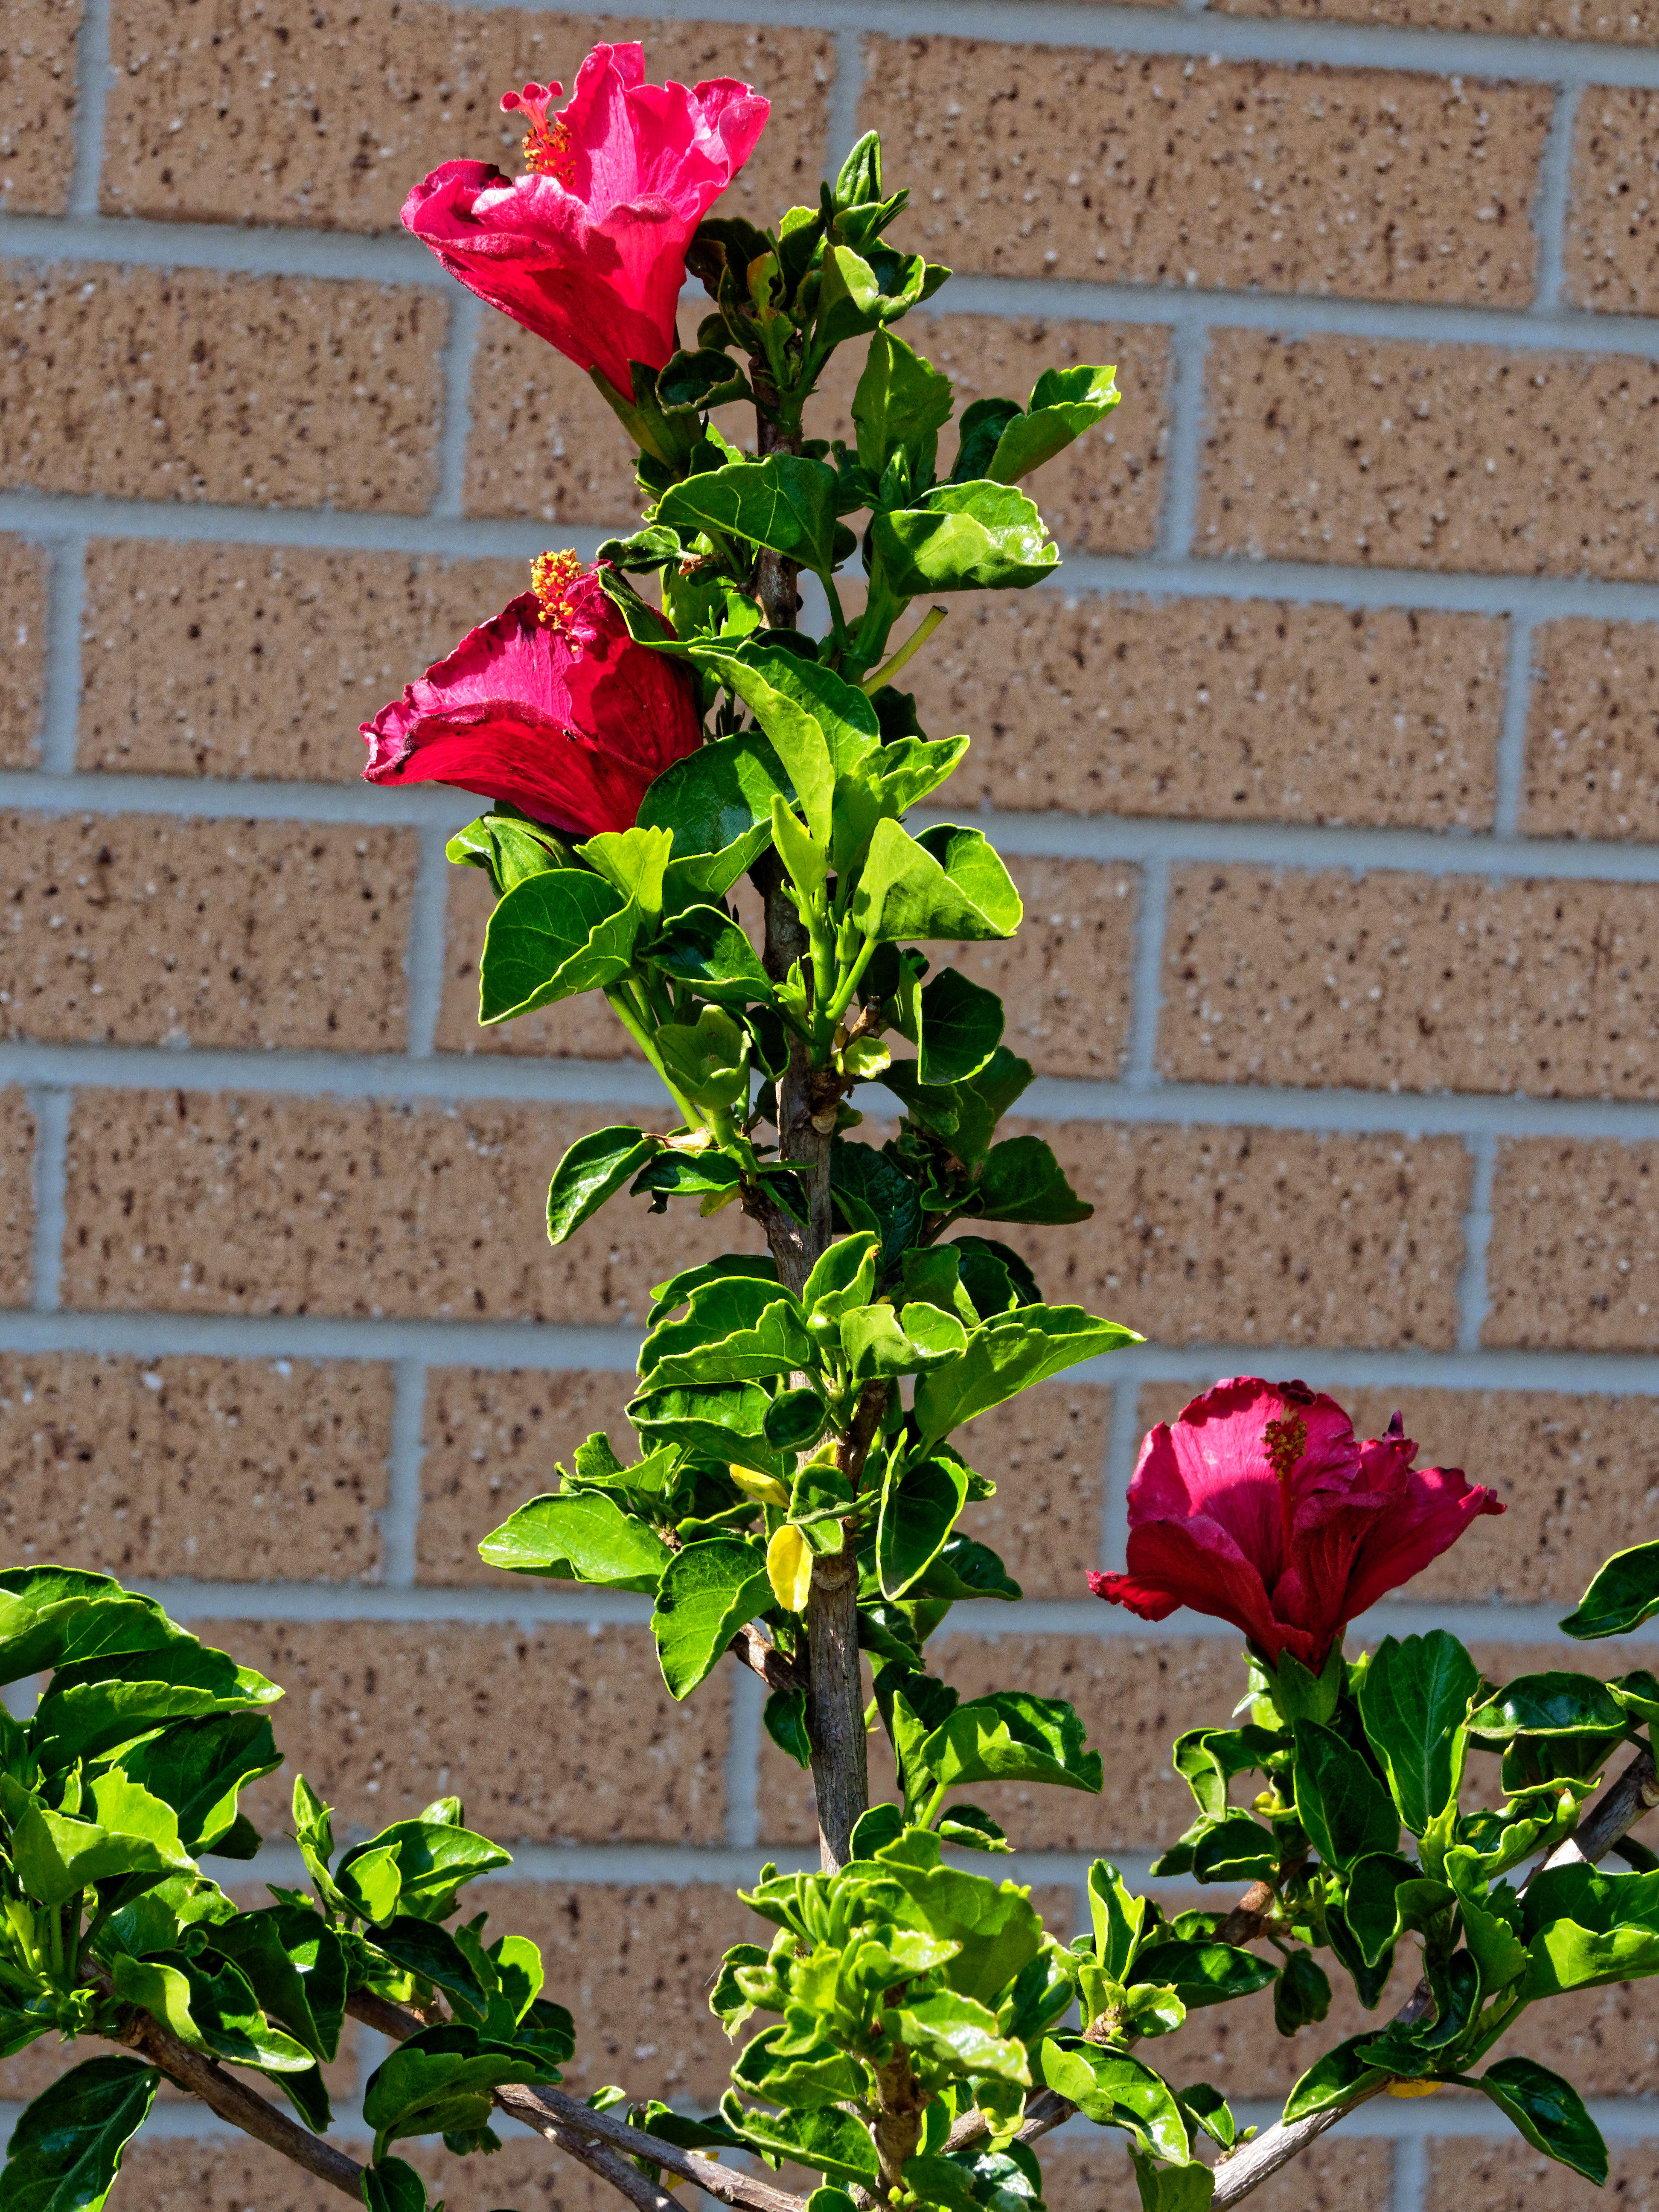 This should be Hibiscus-rosa-sinensis-1.jpeg.  Is it missing?